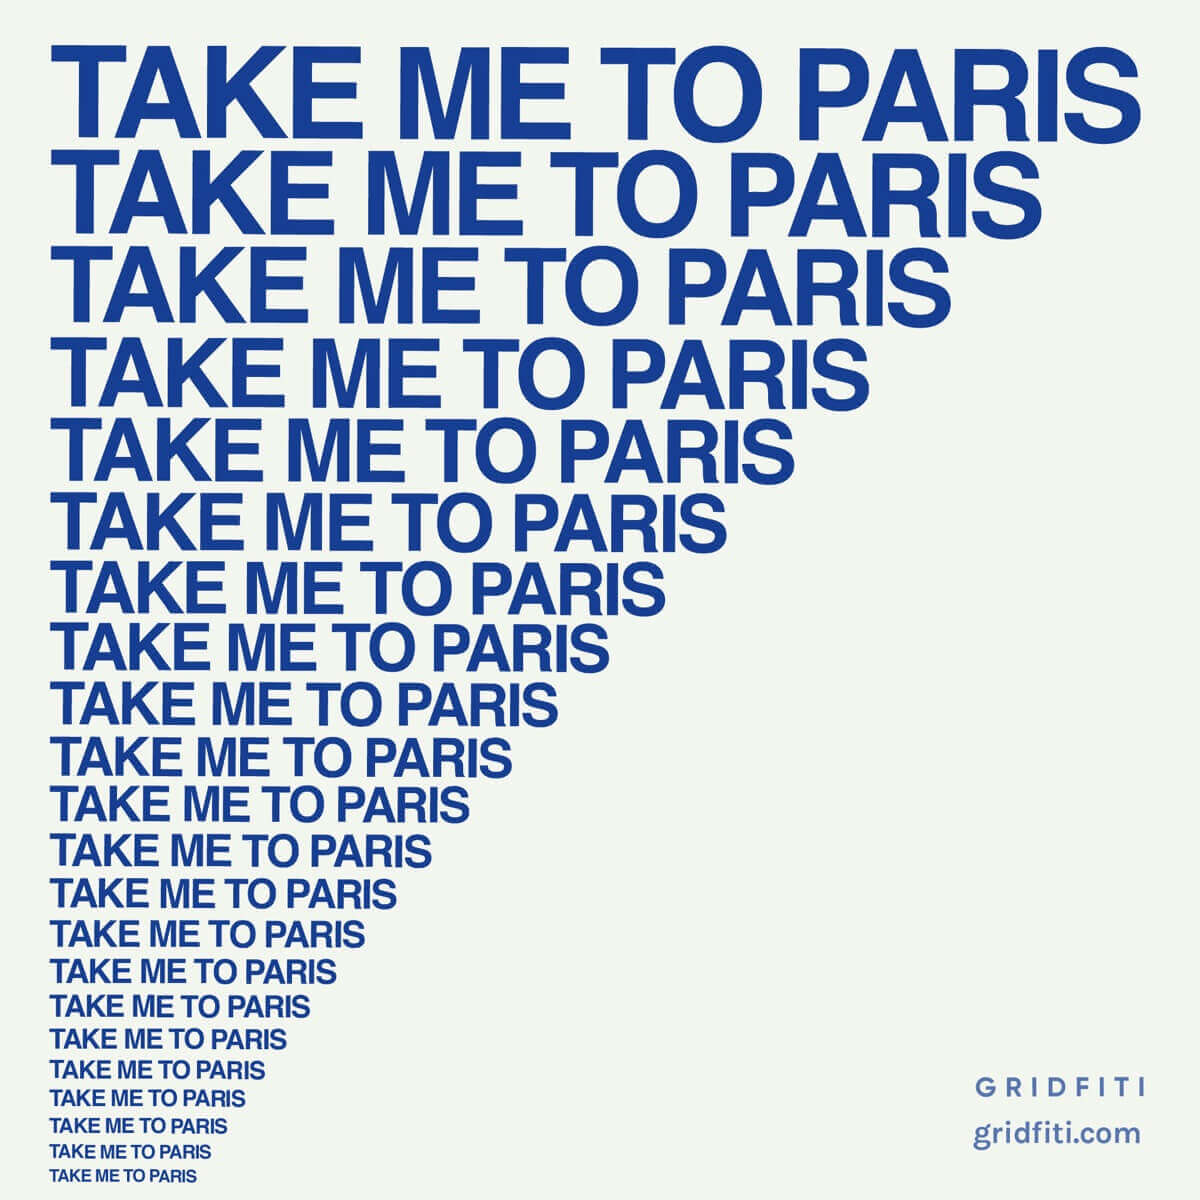 Take me to paris saying